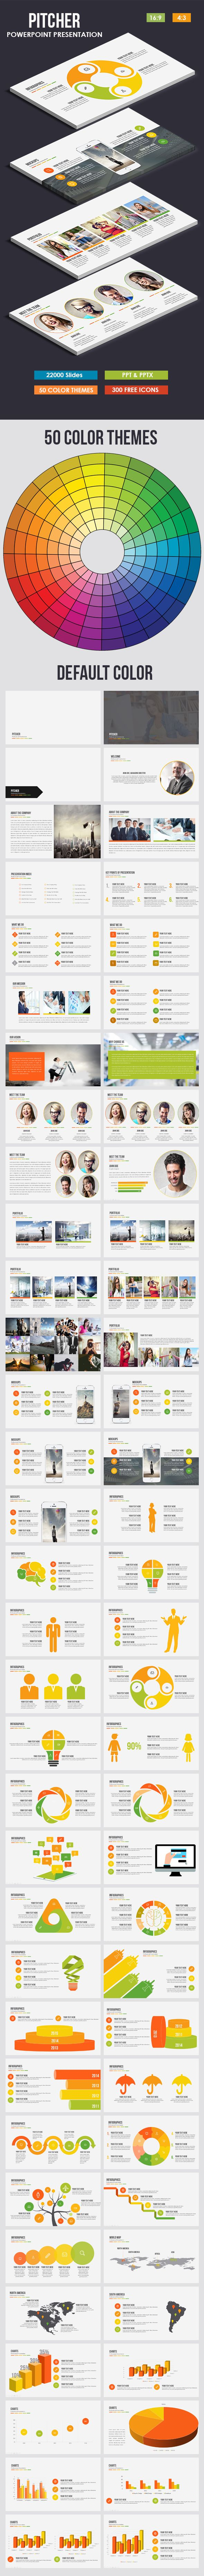 Pitcher - Multi-purpose Powerpoint Template